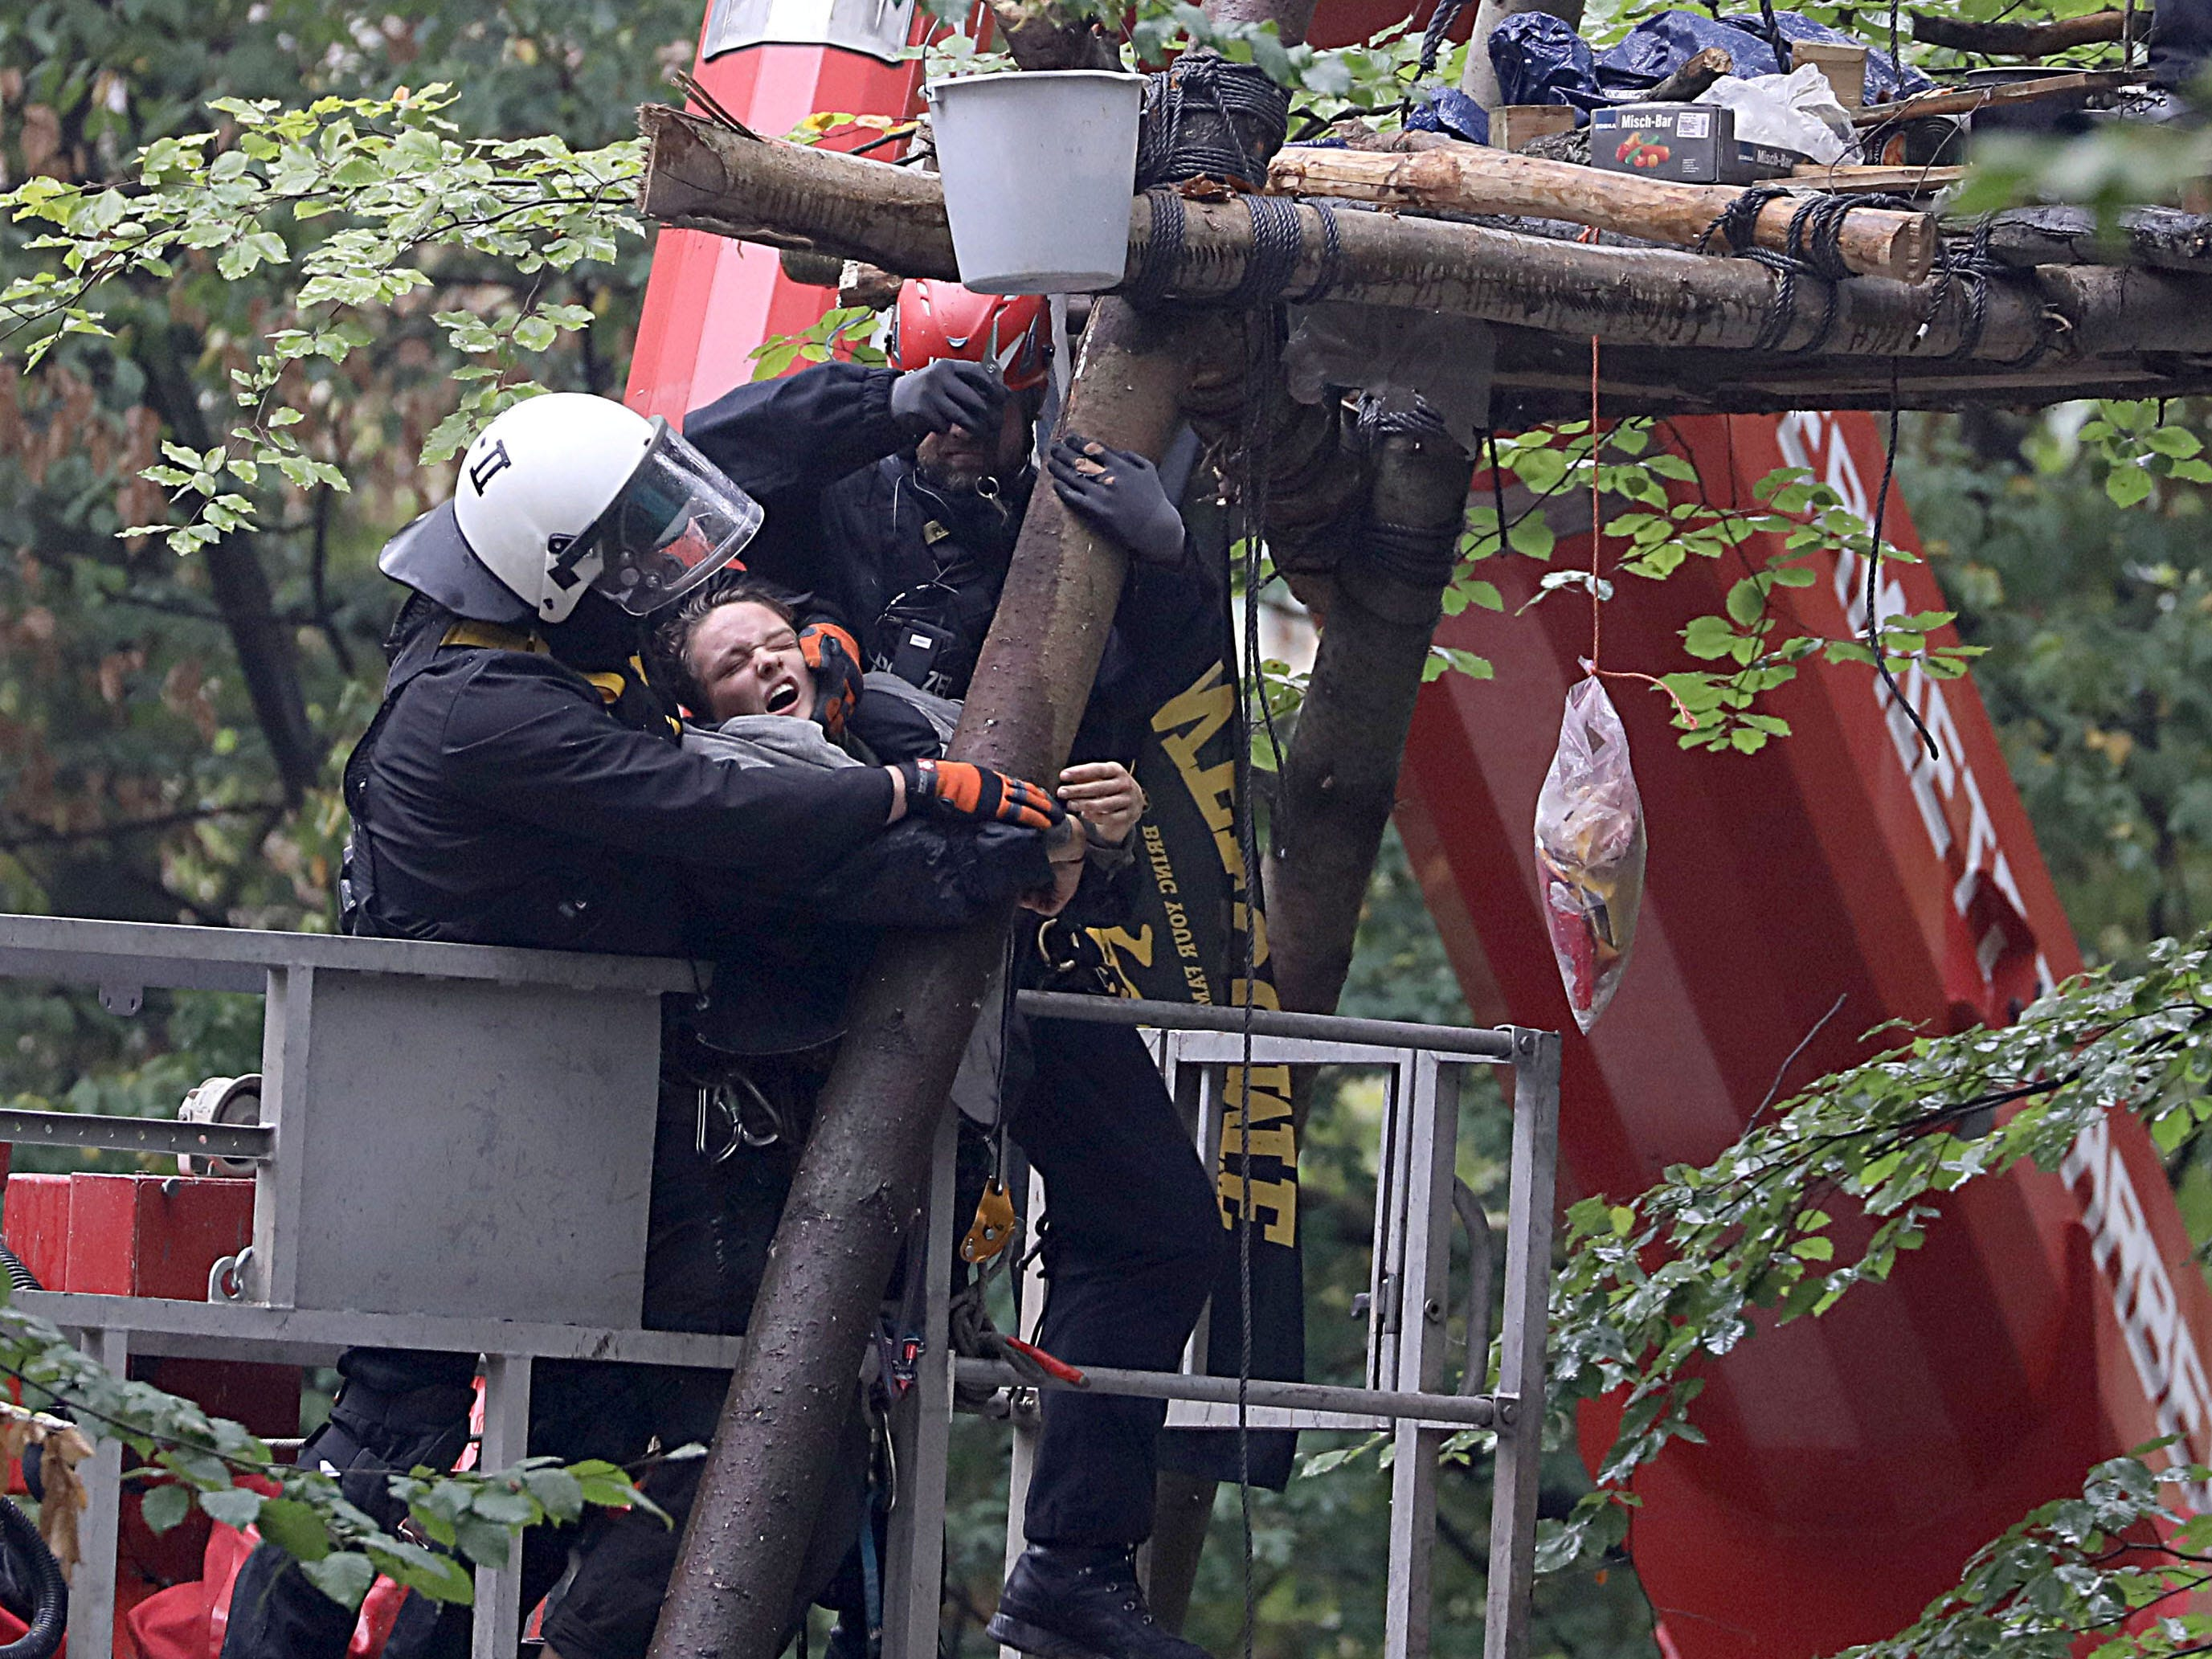 Policemen on a lifting platform drag an environmental activists from a so-called Tripod tree house in the Hambacher Forst forest in Kerpen, western Germany, on September 13, 2018. - German activists living in treehouses to protect the ancient forest from being razed for a nearby coal mine were facing a forced eviction by police, in a major escalation of the long running environmental battle.